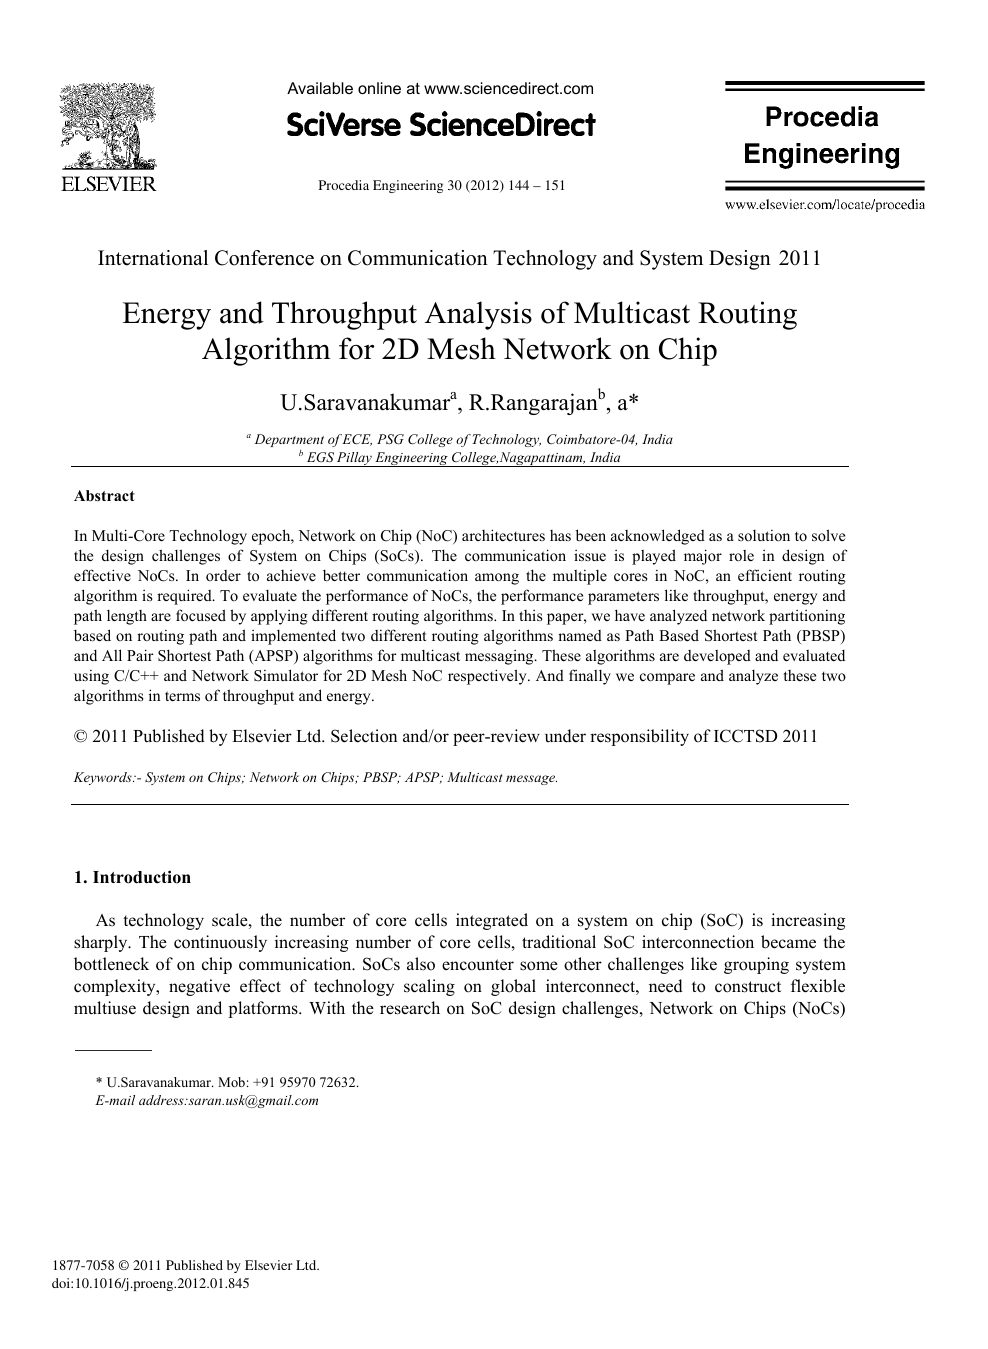 Energy And Throughput Analysis Of Multicast Routing Algorithm For 2d Mesh Network On Chip Topic Of Research Paper In Materials Engineering Download Scholarly Article Pdf And Read For Free On Cyberleninka